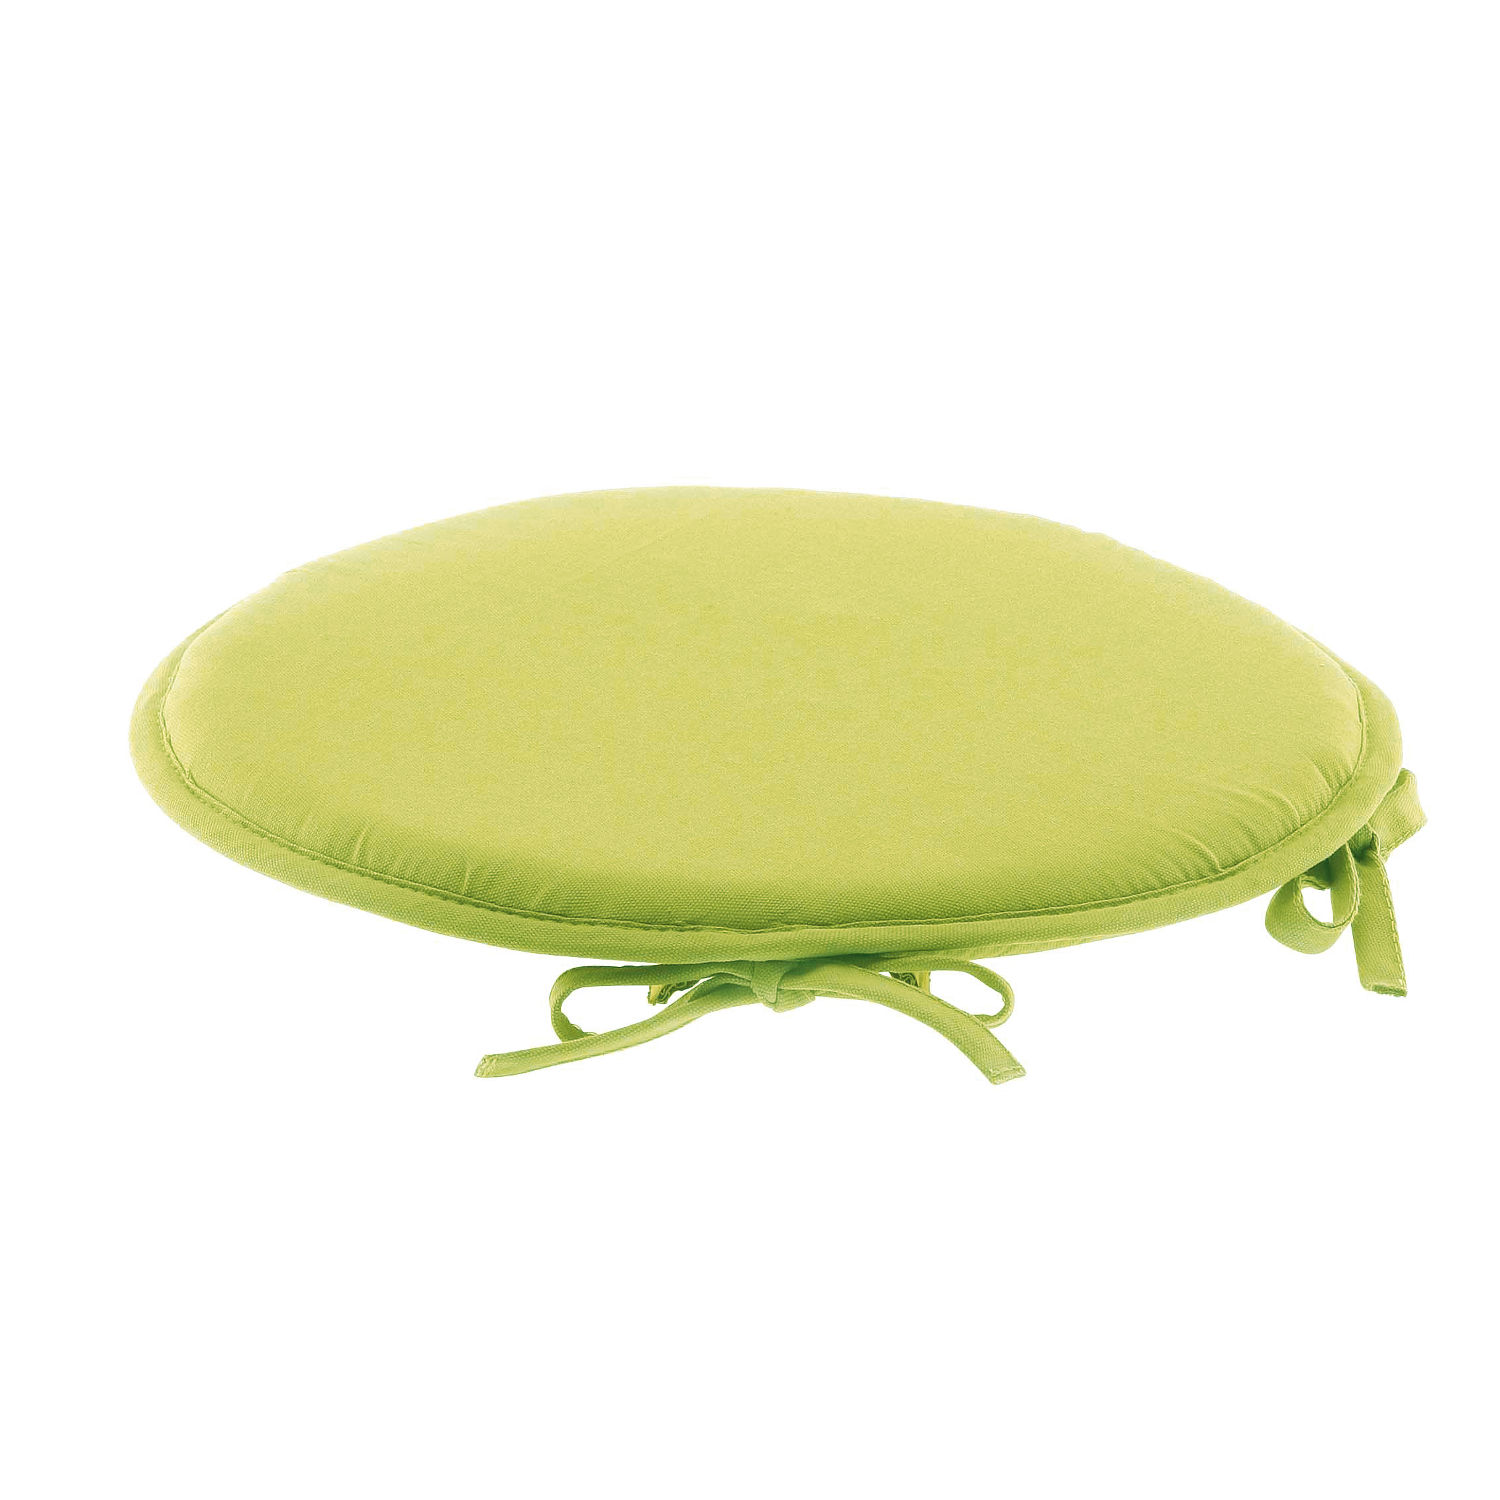 galette de chaise ronde 100 coton vert vert autres ebay. Black Bedroom Furniture Sets. Home Design Ideas